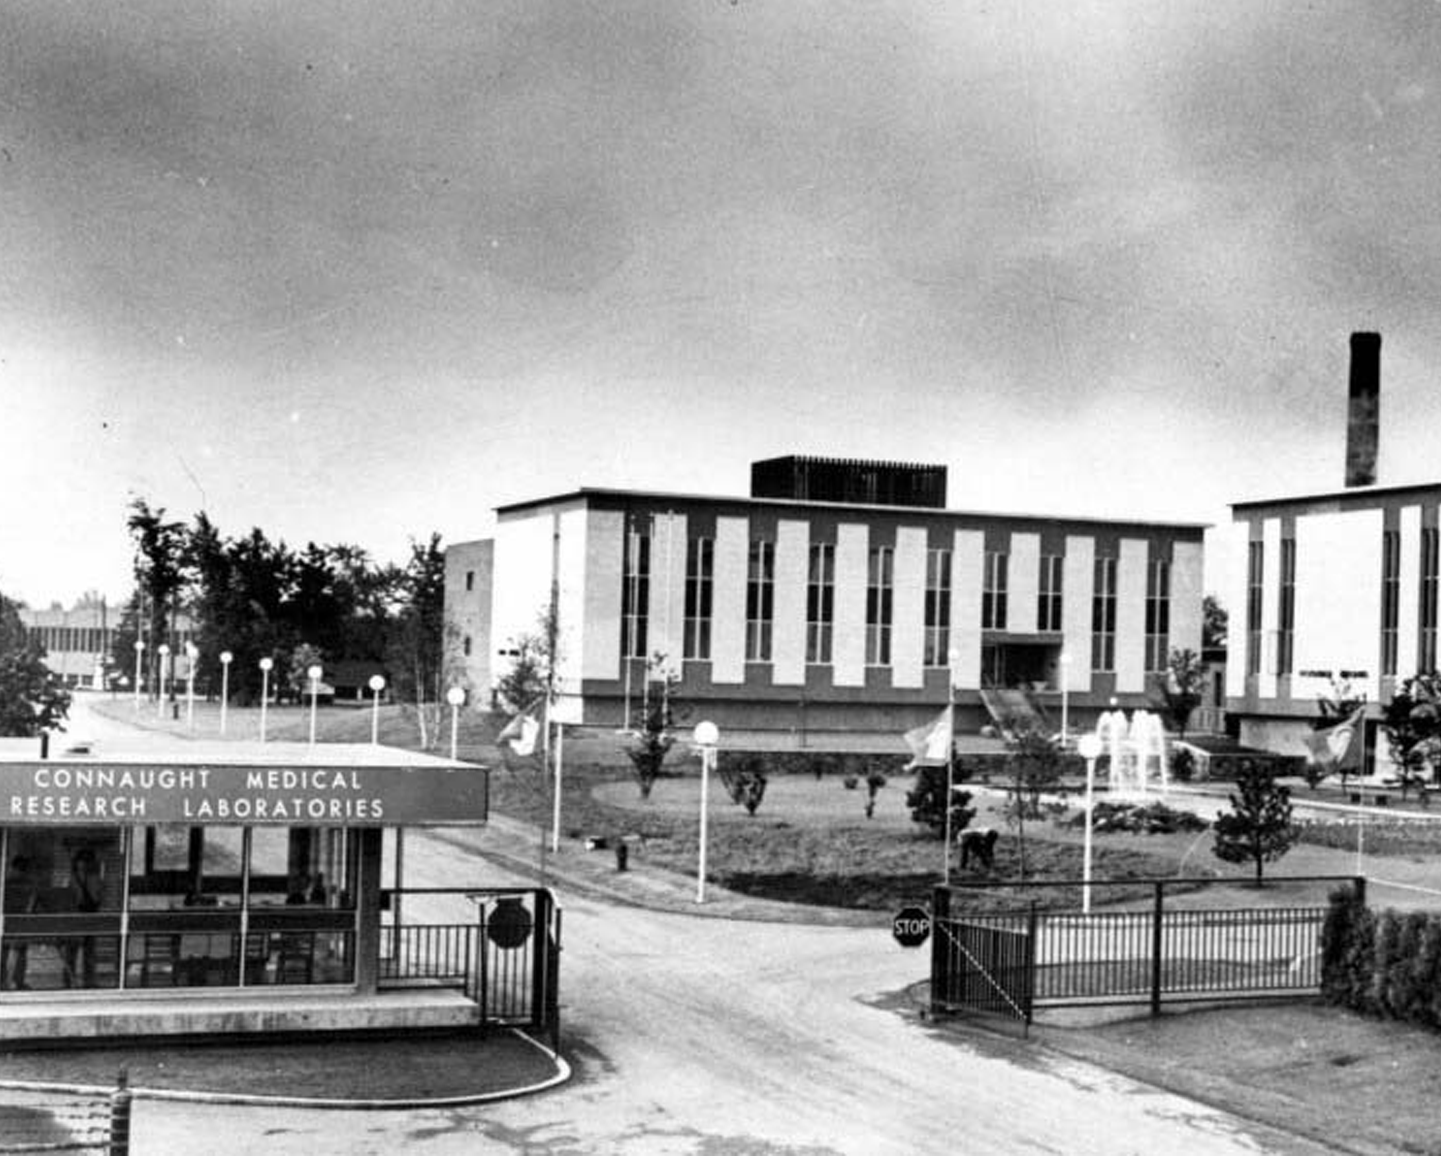 By the end of the end of the 1960s, all of Connaught's research, production, testing, filling, and administrative facilities were located at the Labs' Dufferin Division on Steeles Avenue West, the main entrance to which included a new Guardhouse.